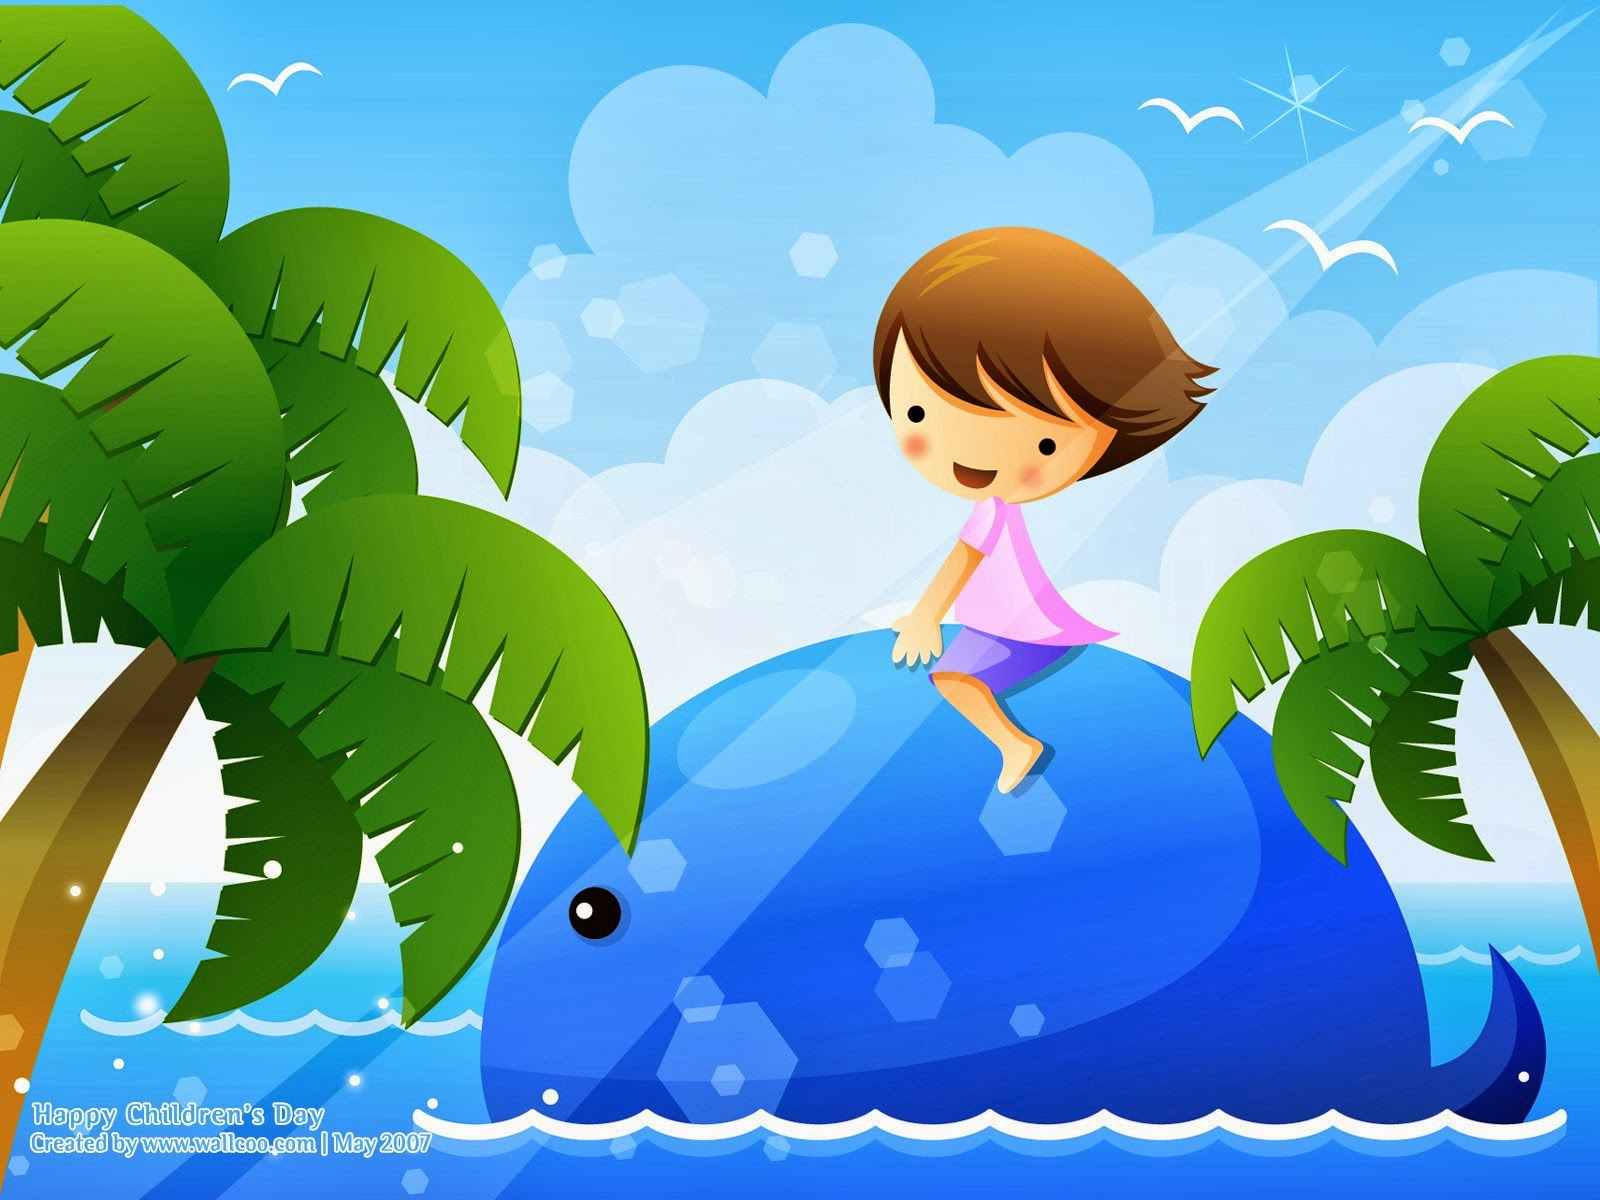 All new wallpaper : Cute kids wallpaper children game